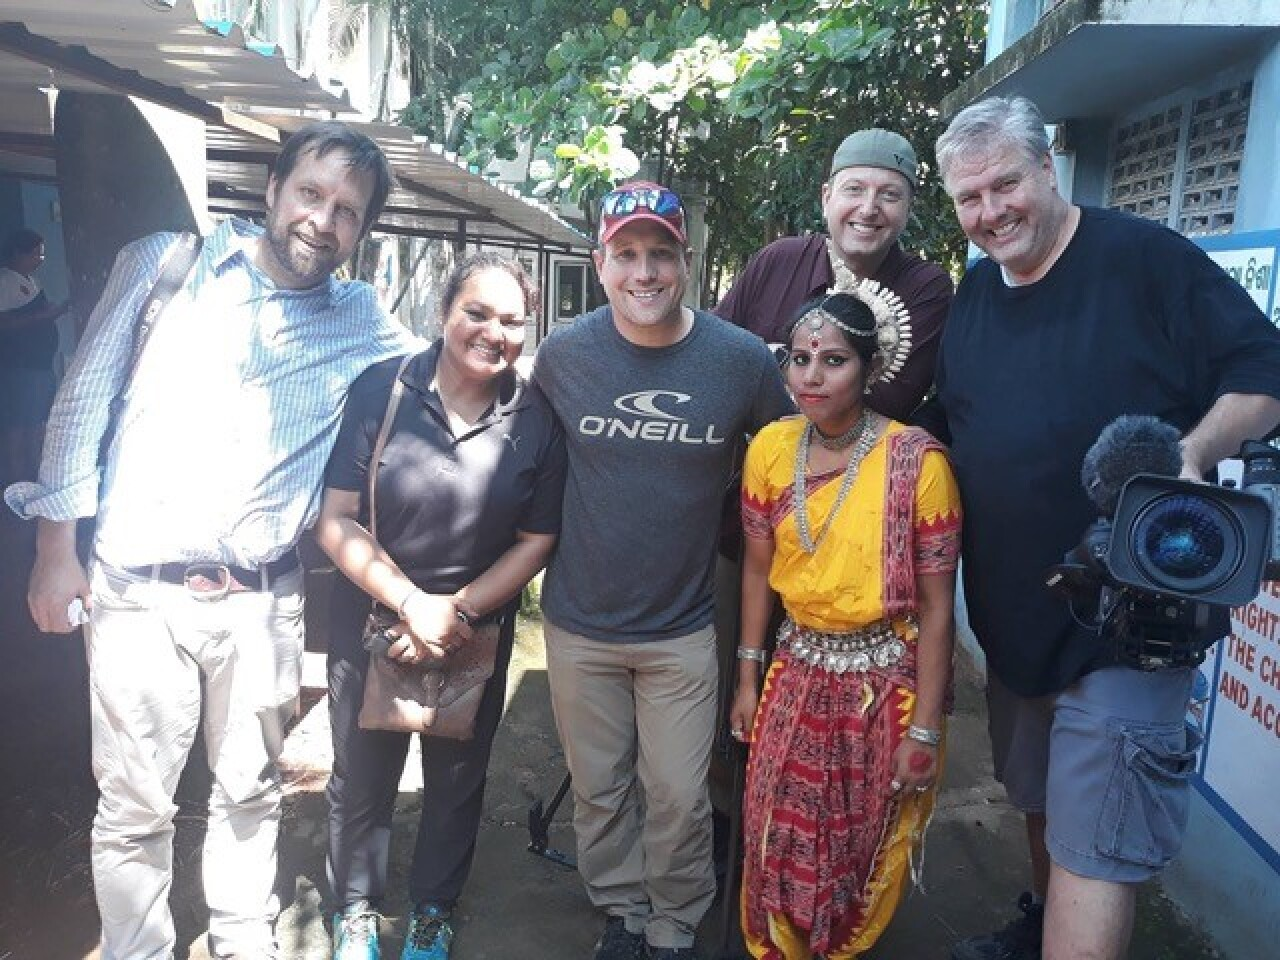 The camera crew consisting of 5 people, 4 male and one female, pose with a local person in a pedestrian area. The local woman is wearing a small decorative head dress, beads, and an ornate and colorful (yellow and red) outfit.